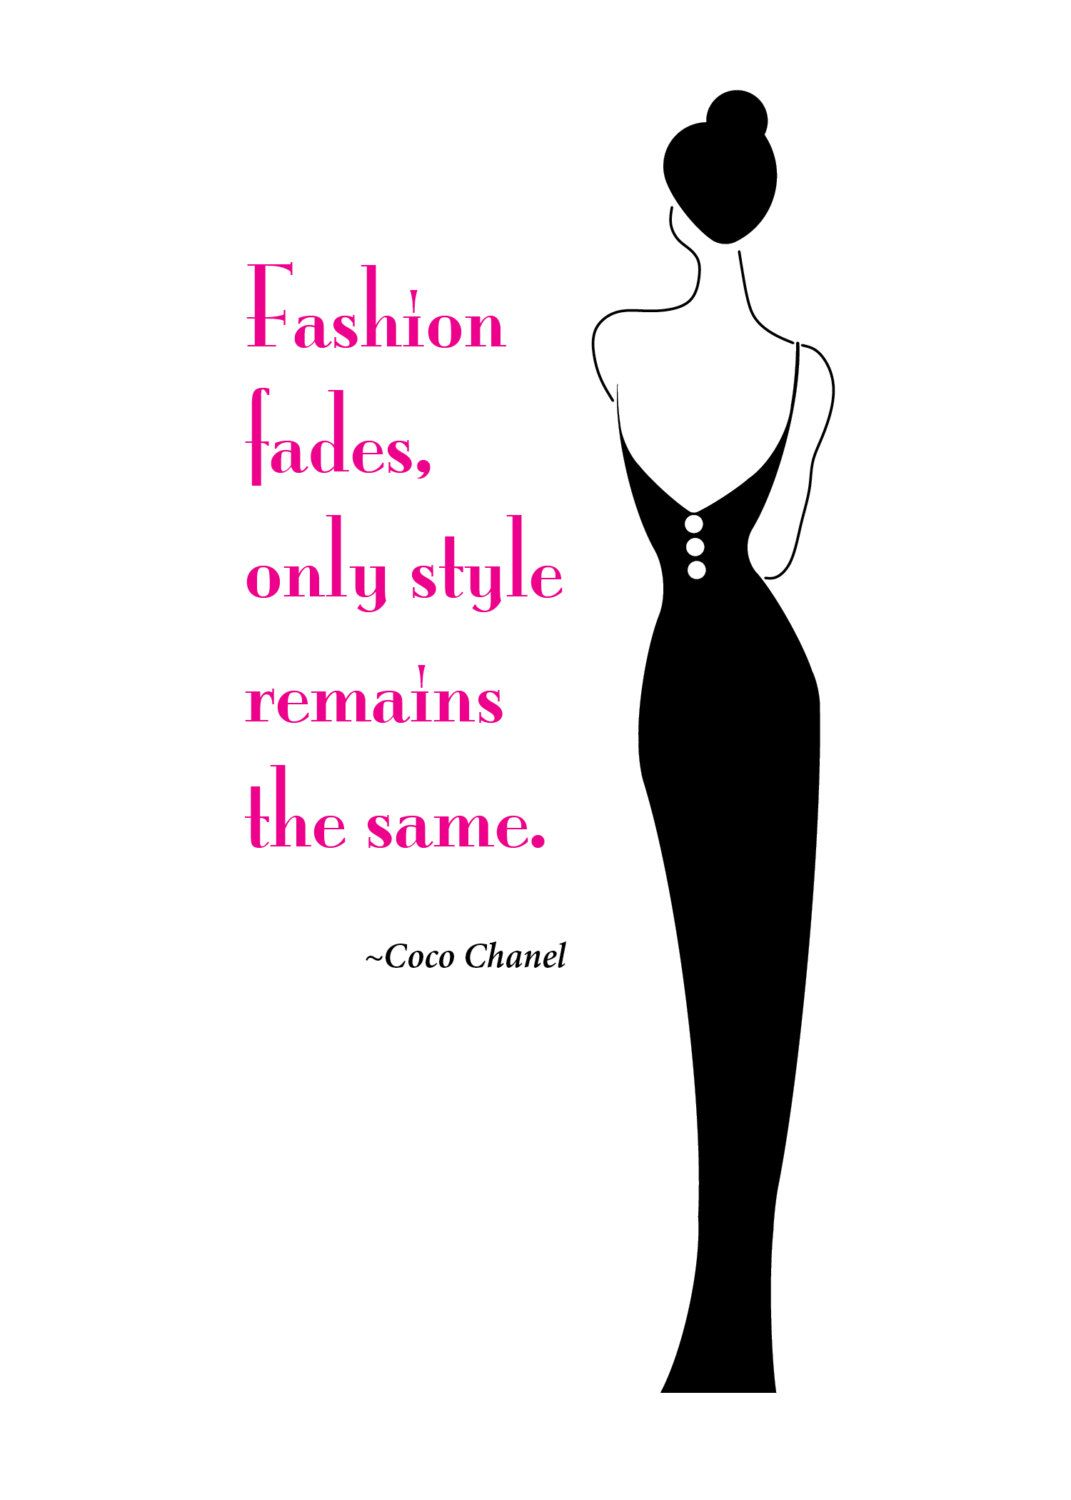 an evergreen coco chanel quotes